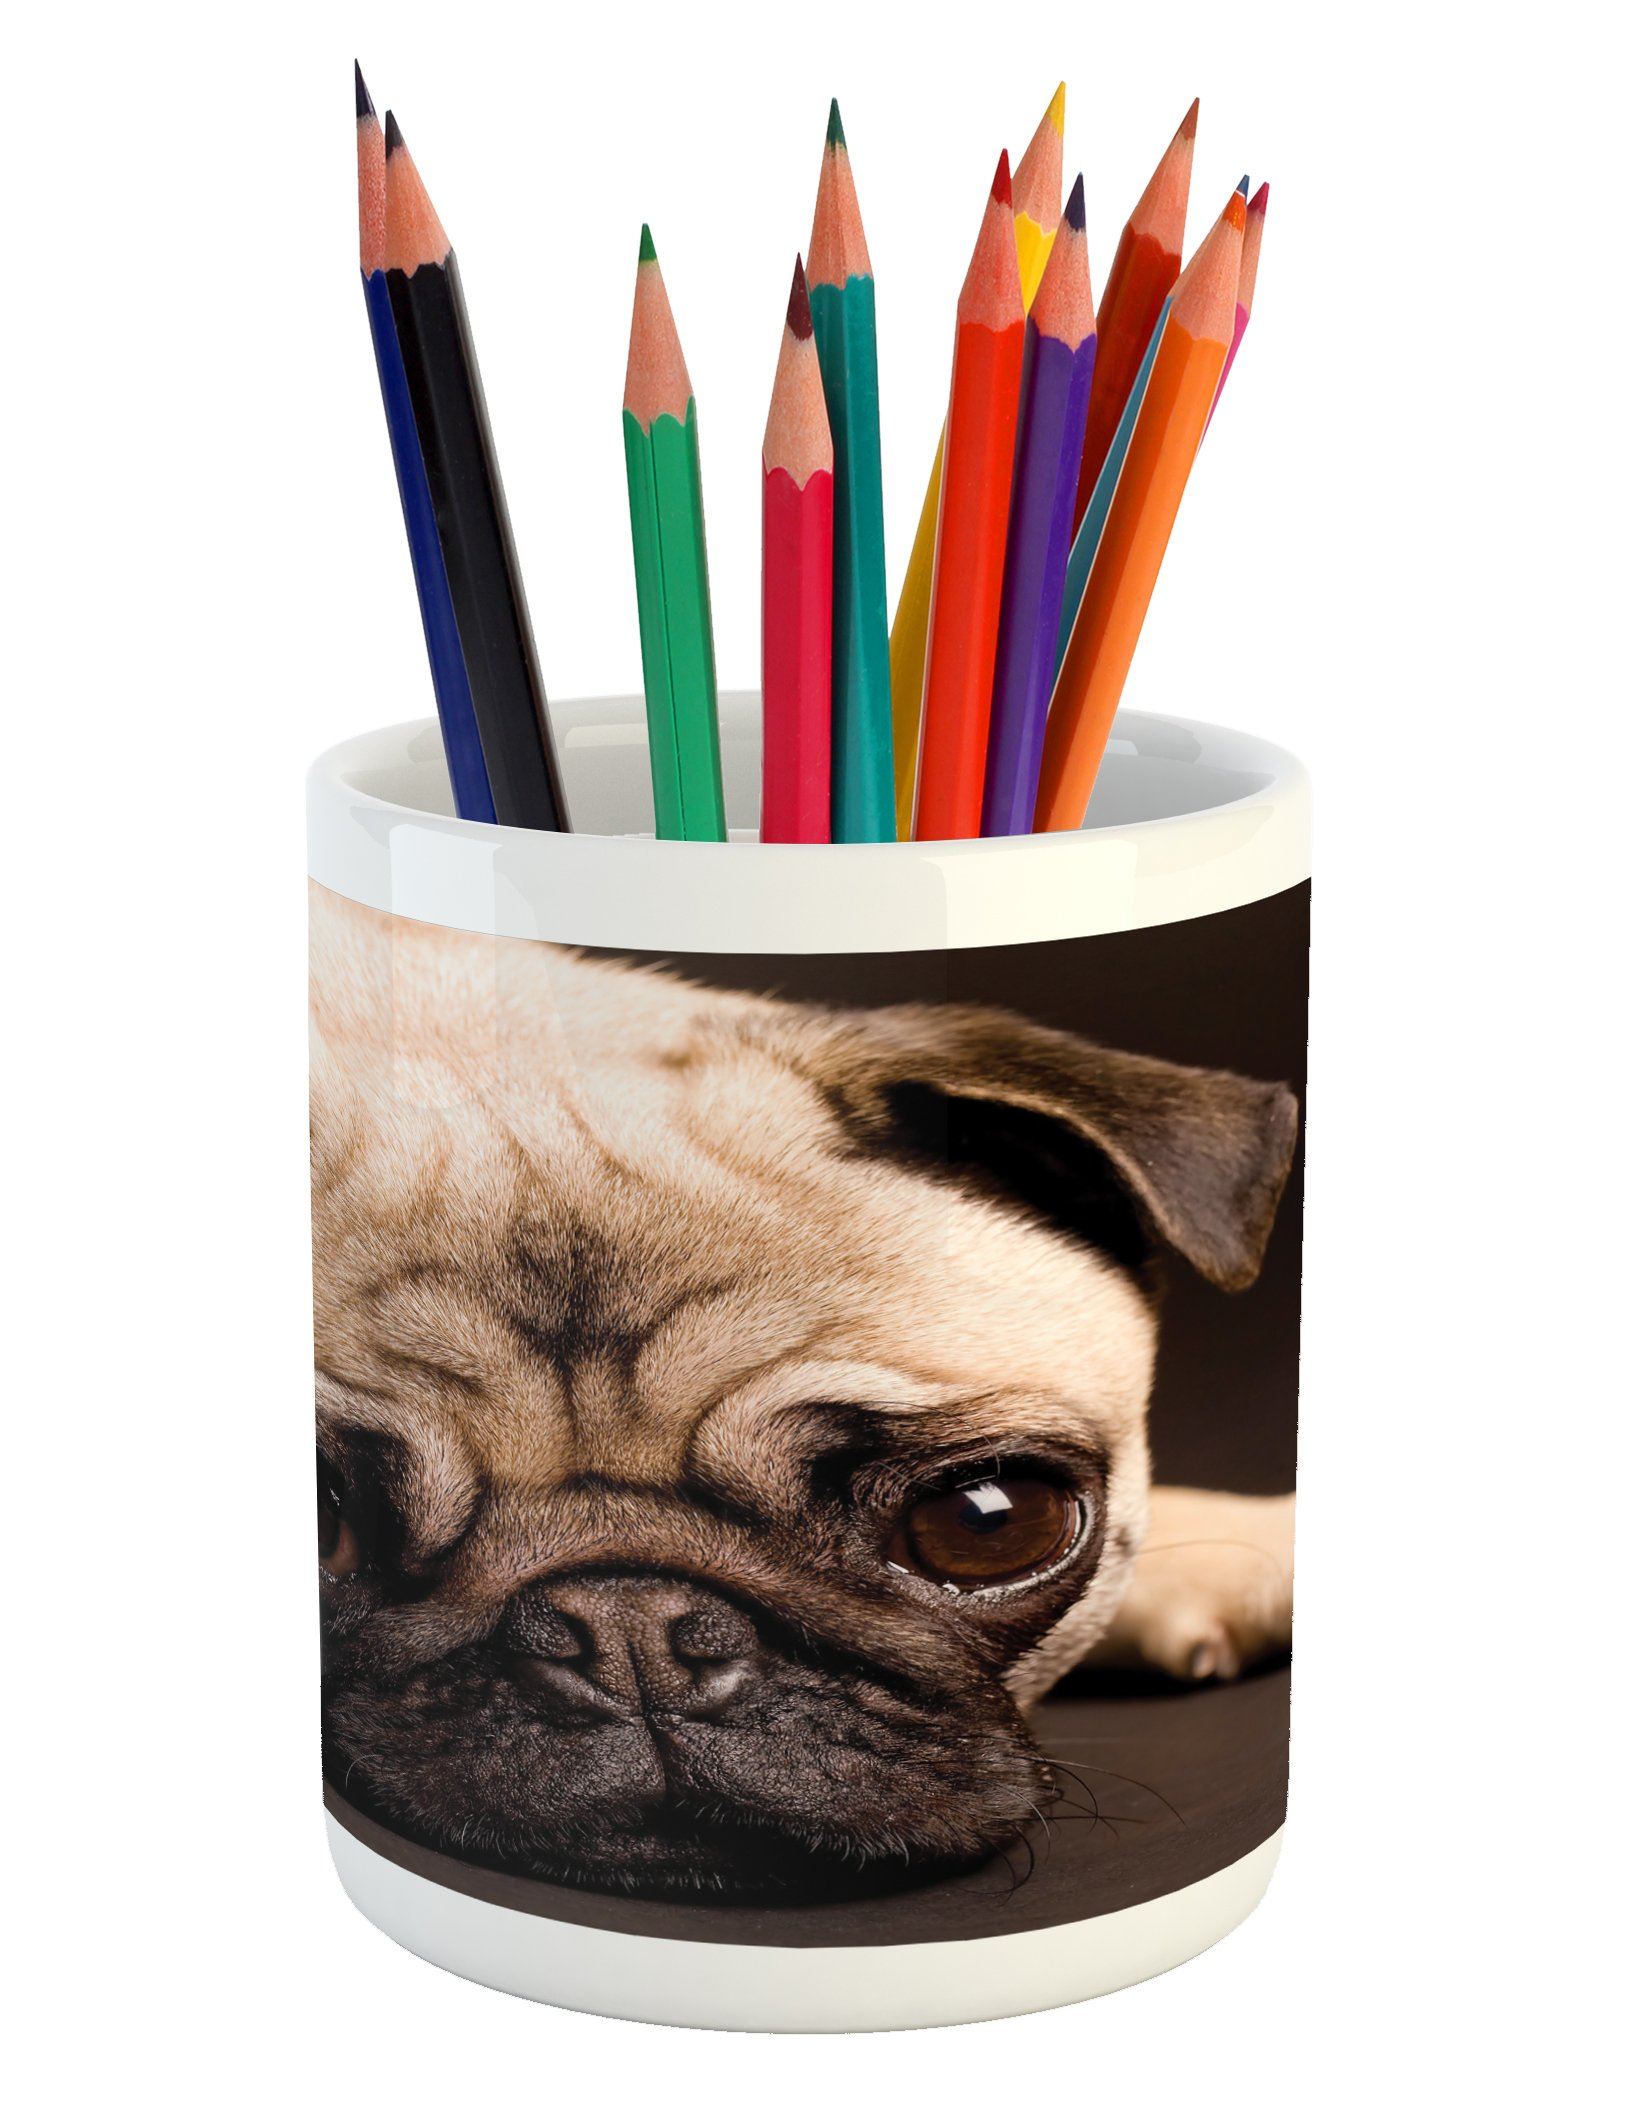 Ambesonne Pug Pencil Pen Holder, Cute Photograph of a Pug with Its Little Paws Pure Bred Dog Image Animal Fun, Printed Ceramic Pencil Pen Holder for Desk Office Accessory, Brown Pale Brown